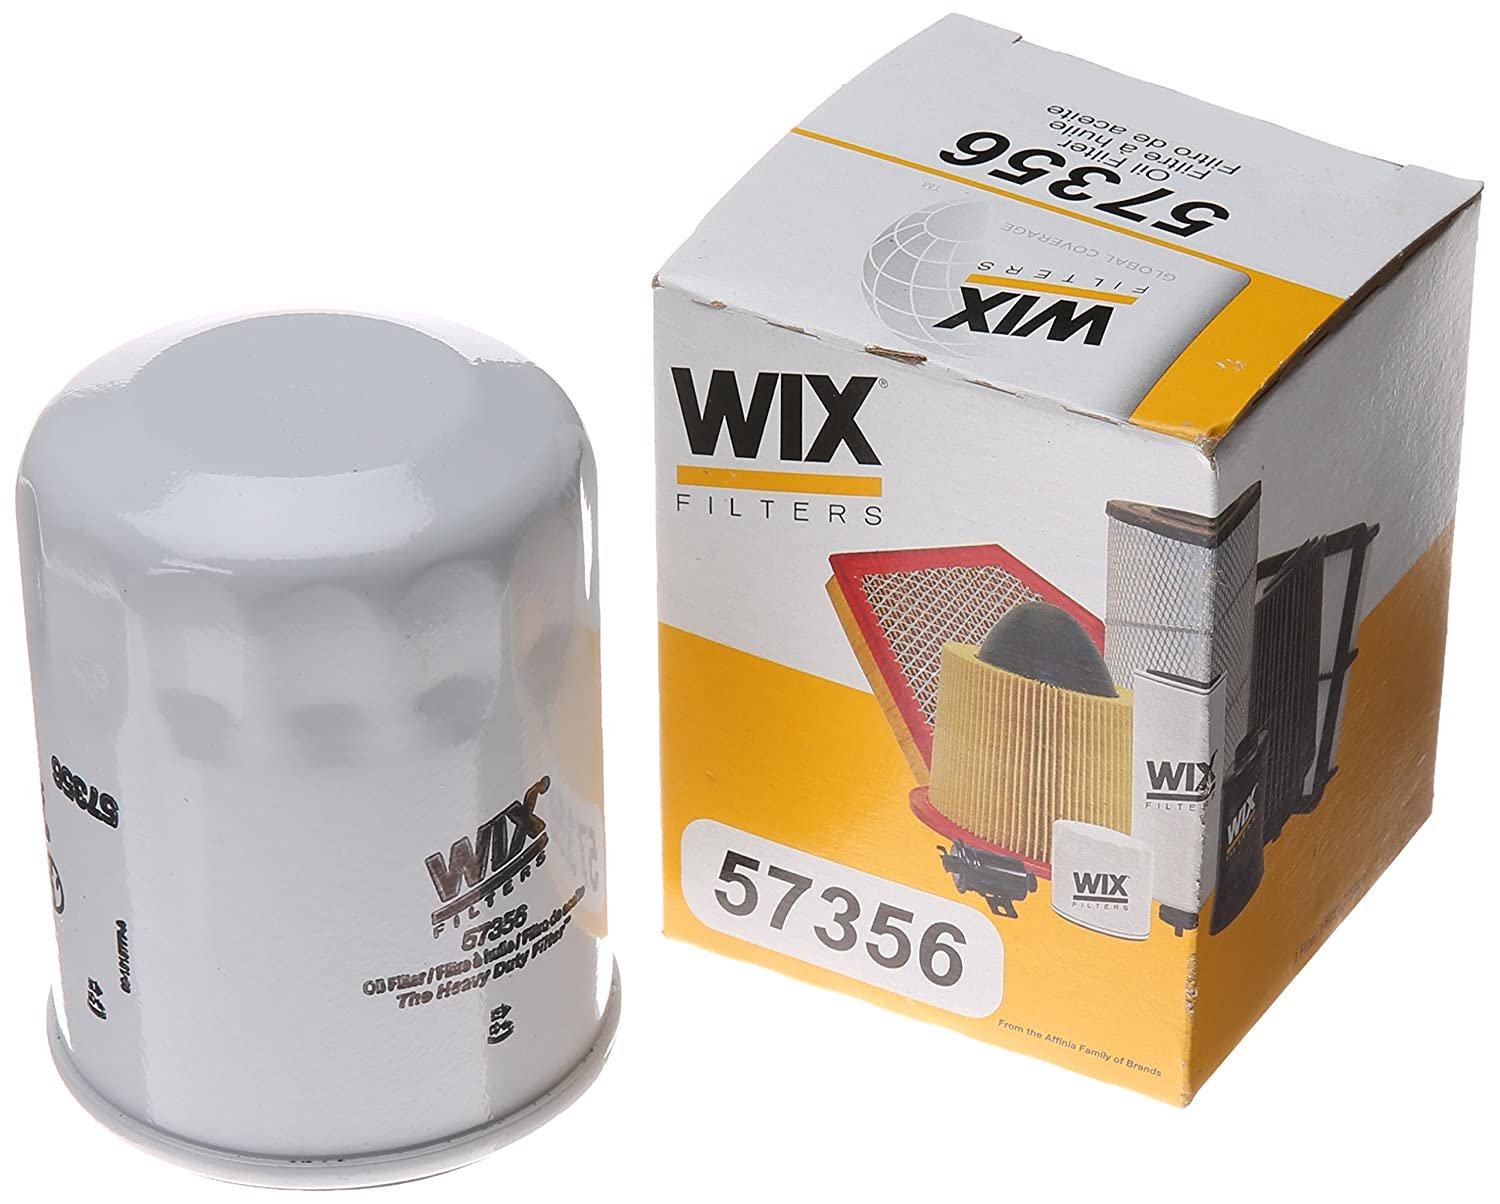 WIX Filters - 57356 Spin-On Lube Filter, Pack of 1